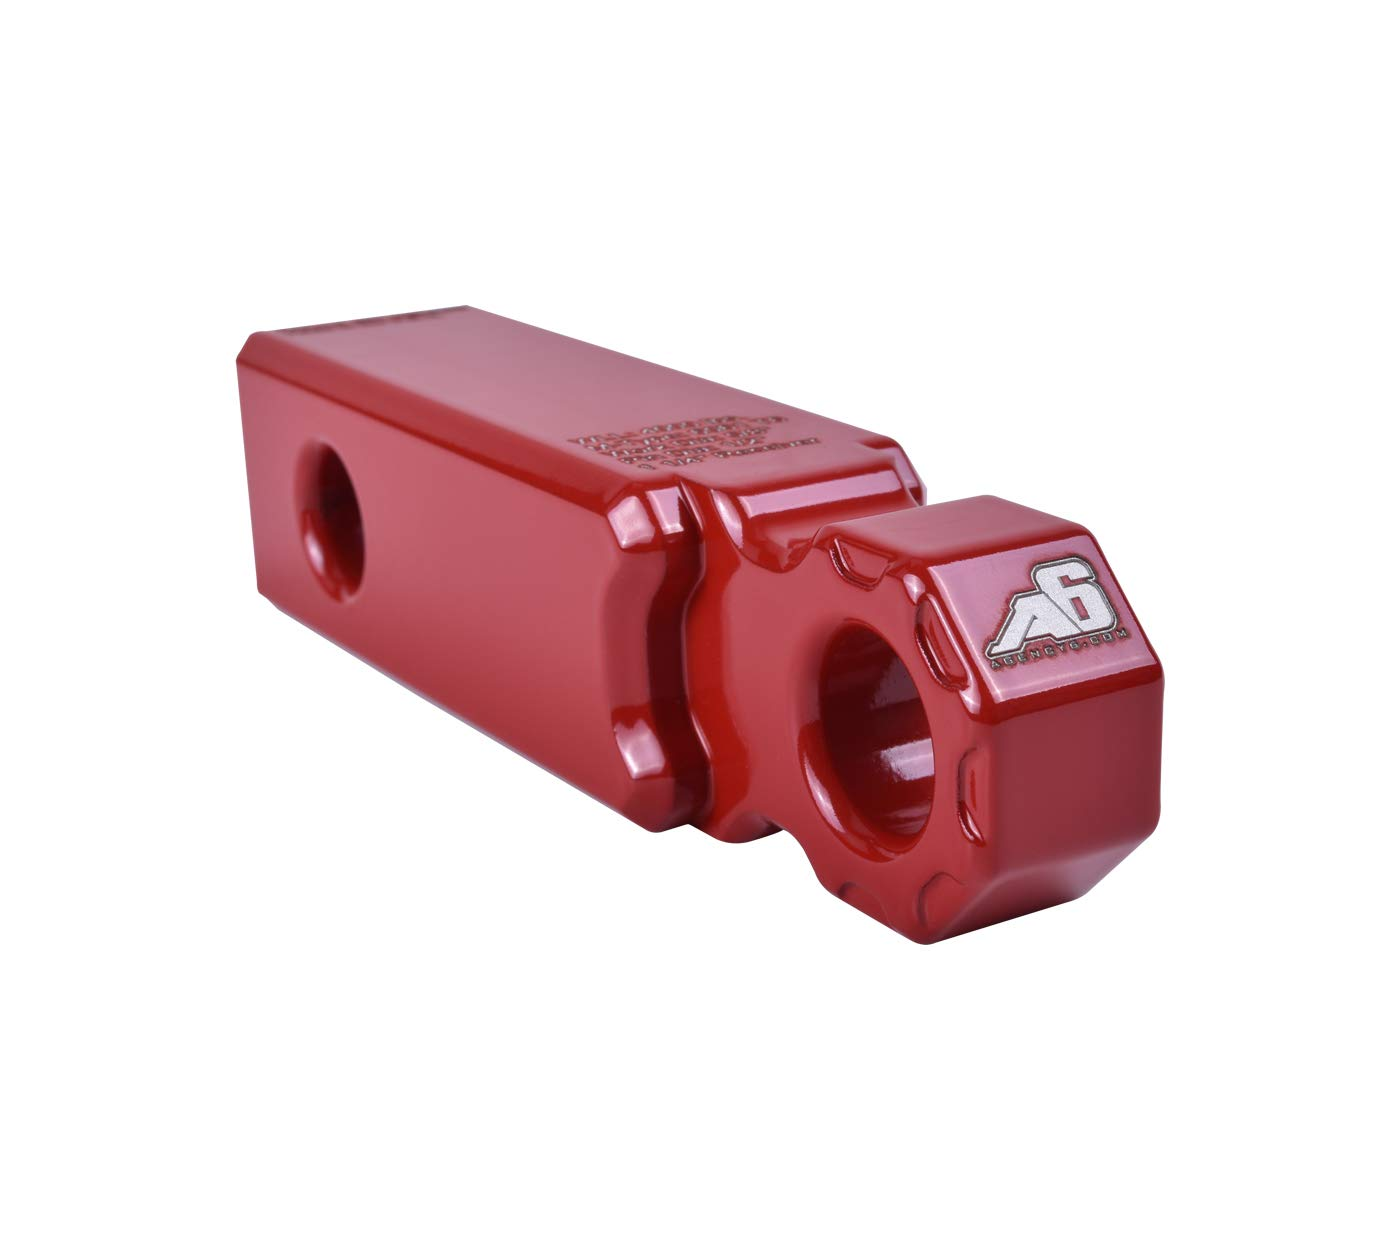 Agency 6 Recovery Shackle Block 1.25'' RED Powder Coat - Hitch Receiver Fits 1.25 inch Hitch receivers HitchLink Recovery Tow Block - Proudly Made in The USA with US Certified Materials by Agency 6